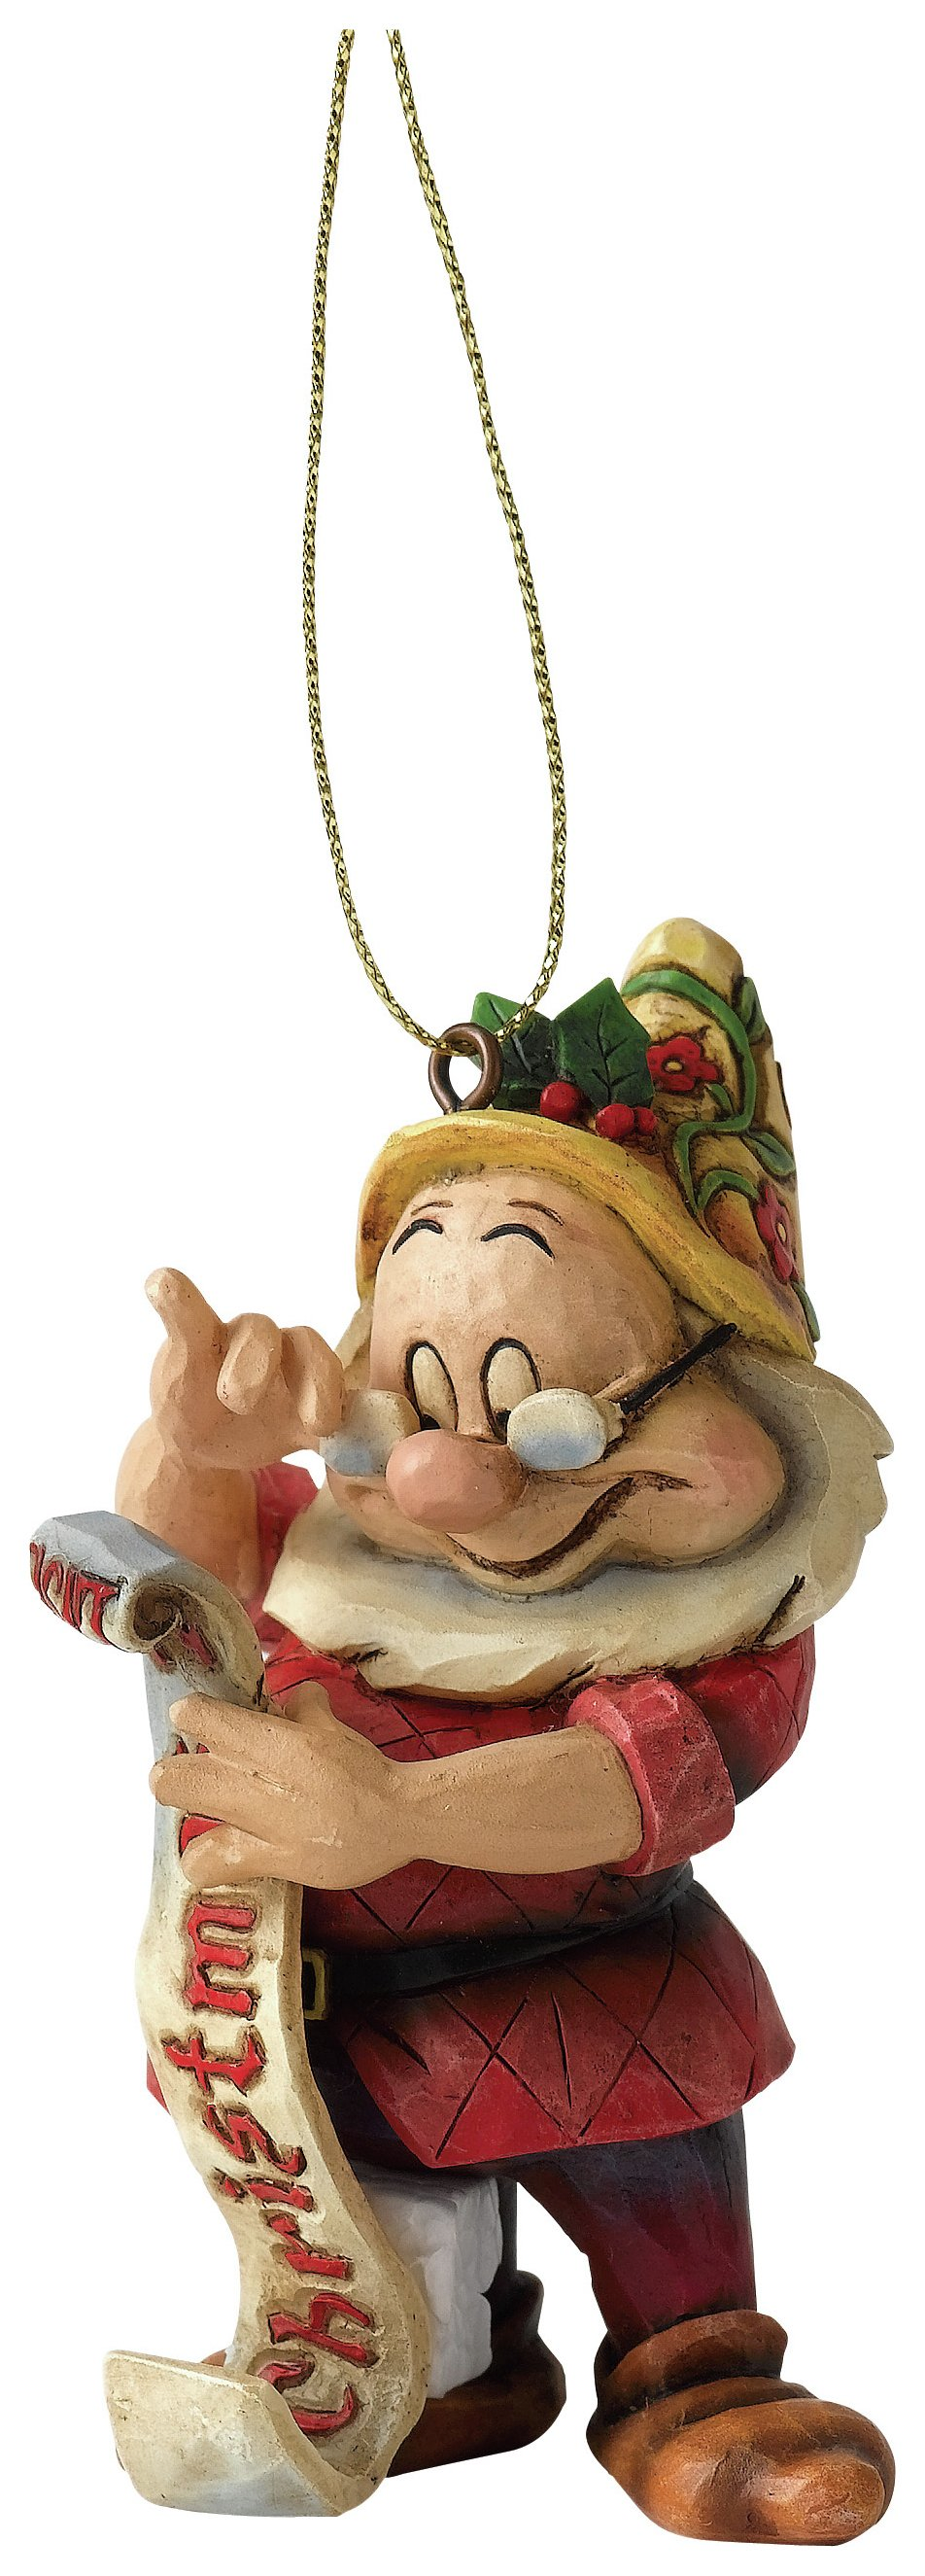 Image of Disney -Traditions Doc - Hanging Ornament